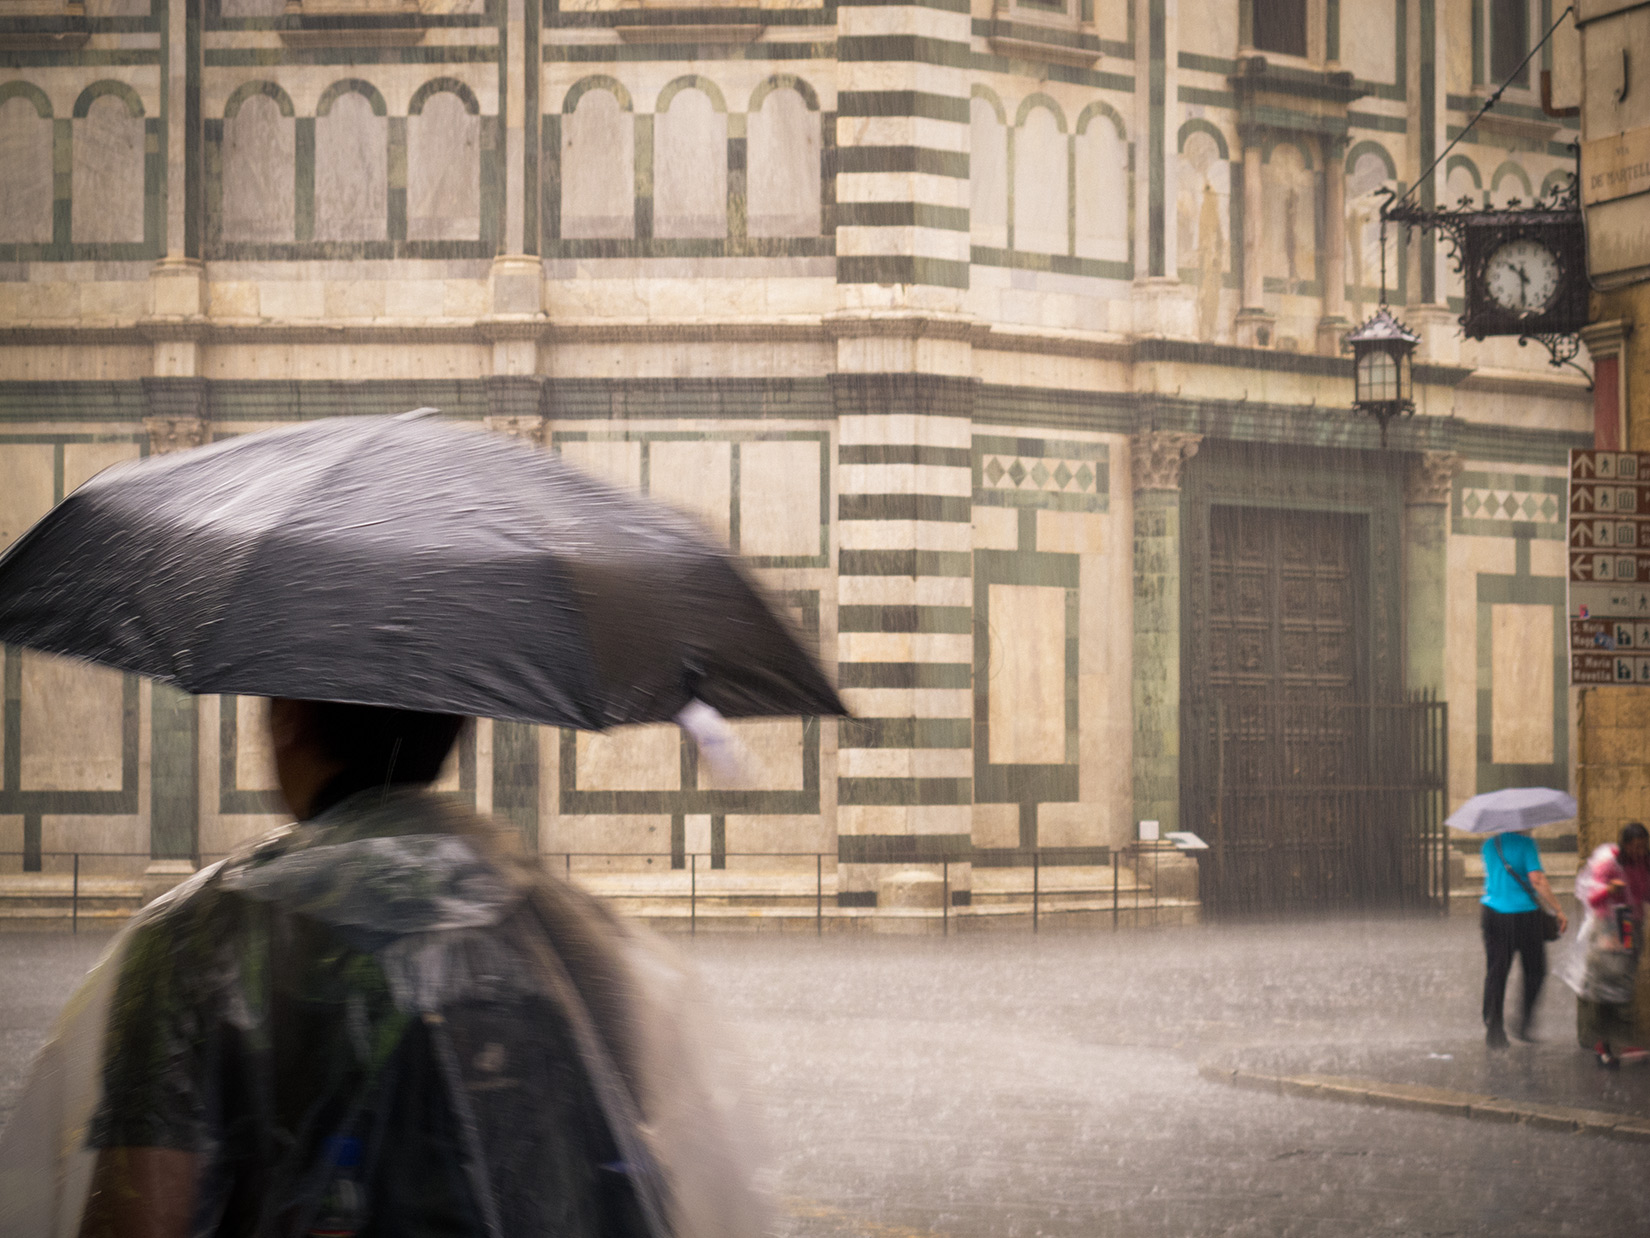 Firenze under an heavy rainstorm